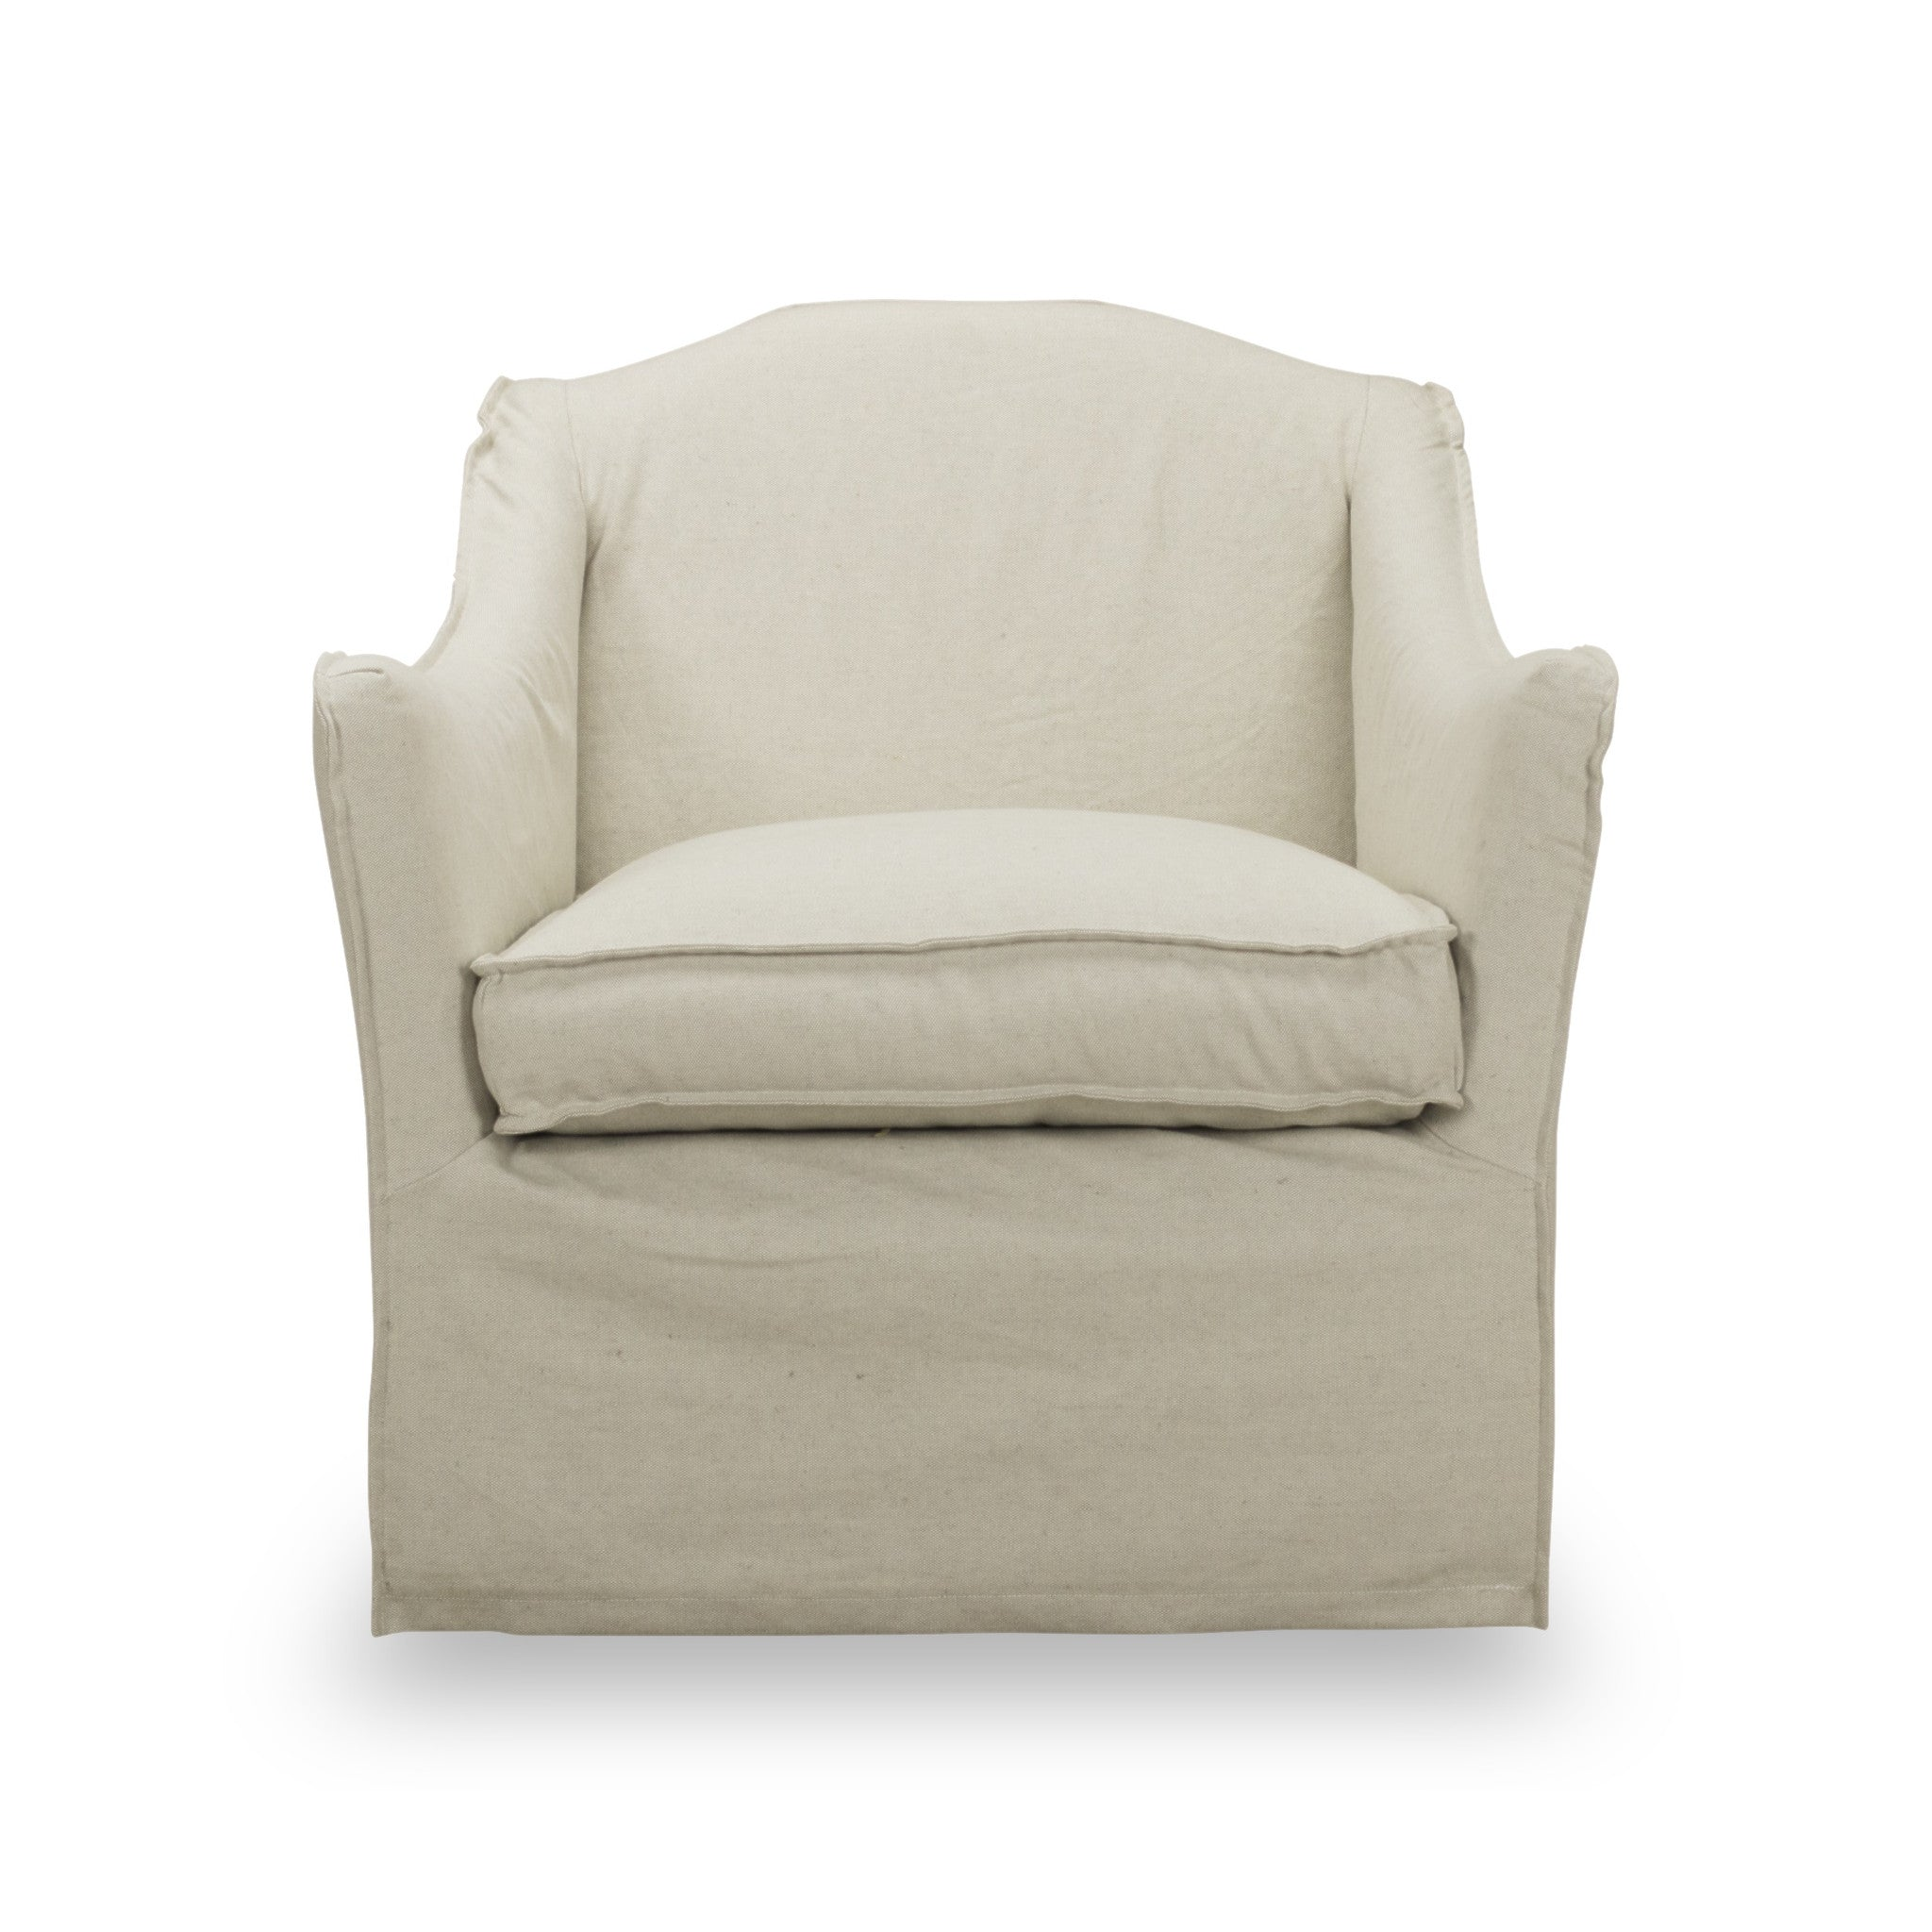 ... Keith Slip Cover Swivel Chair In Linen ...